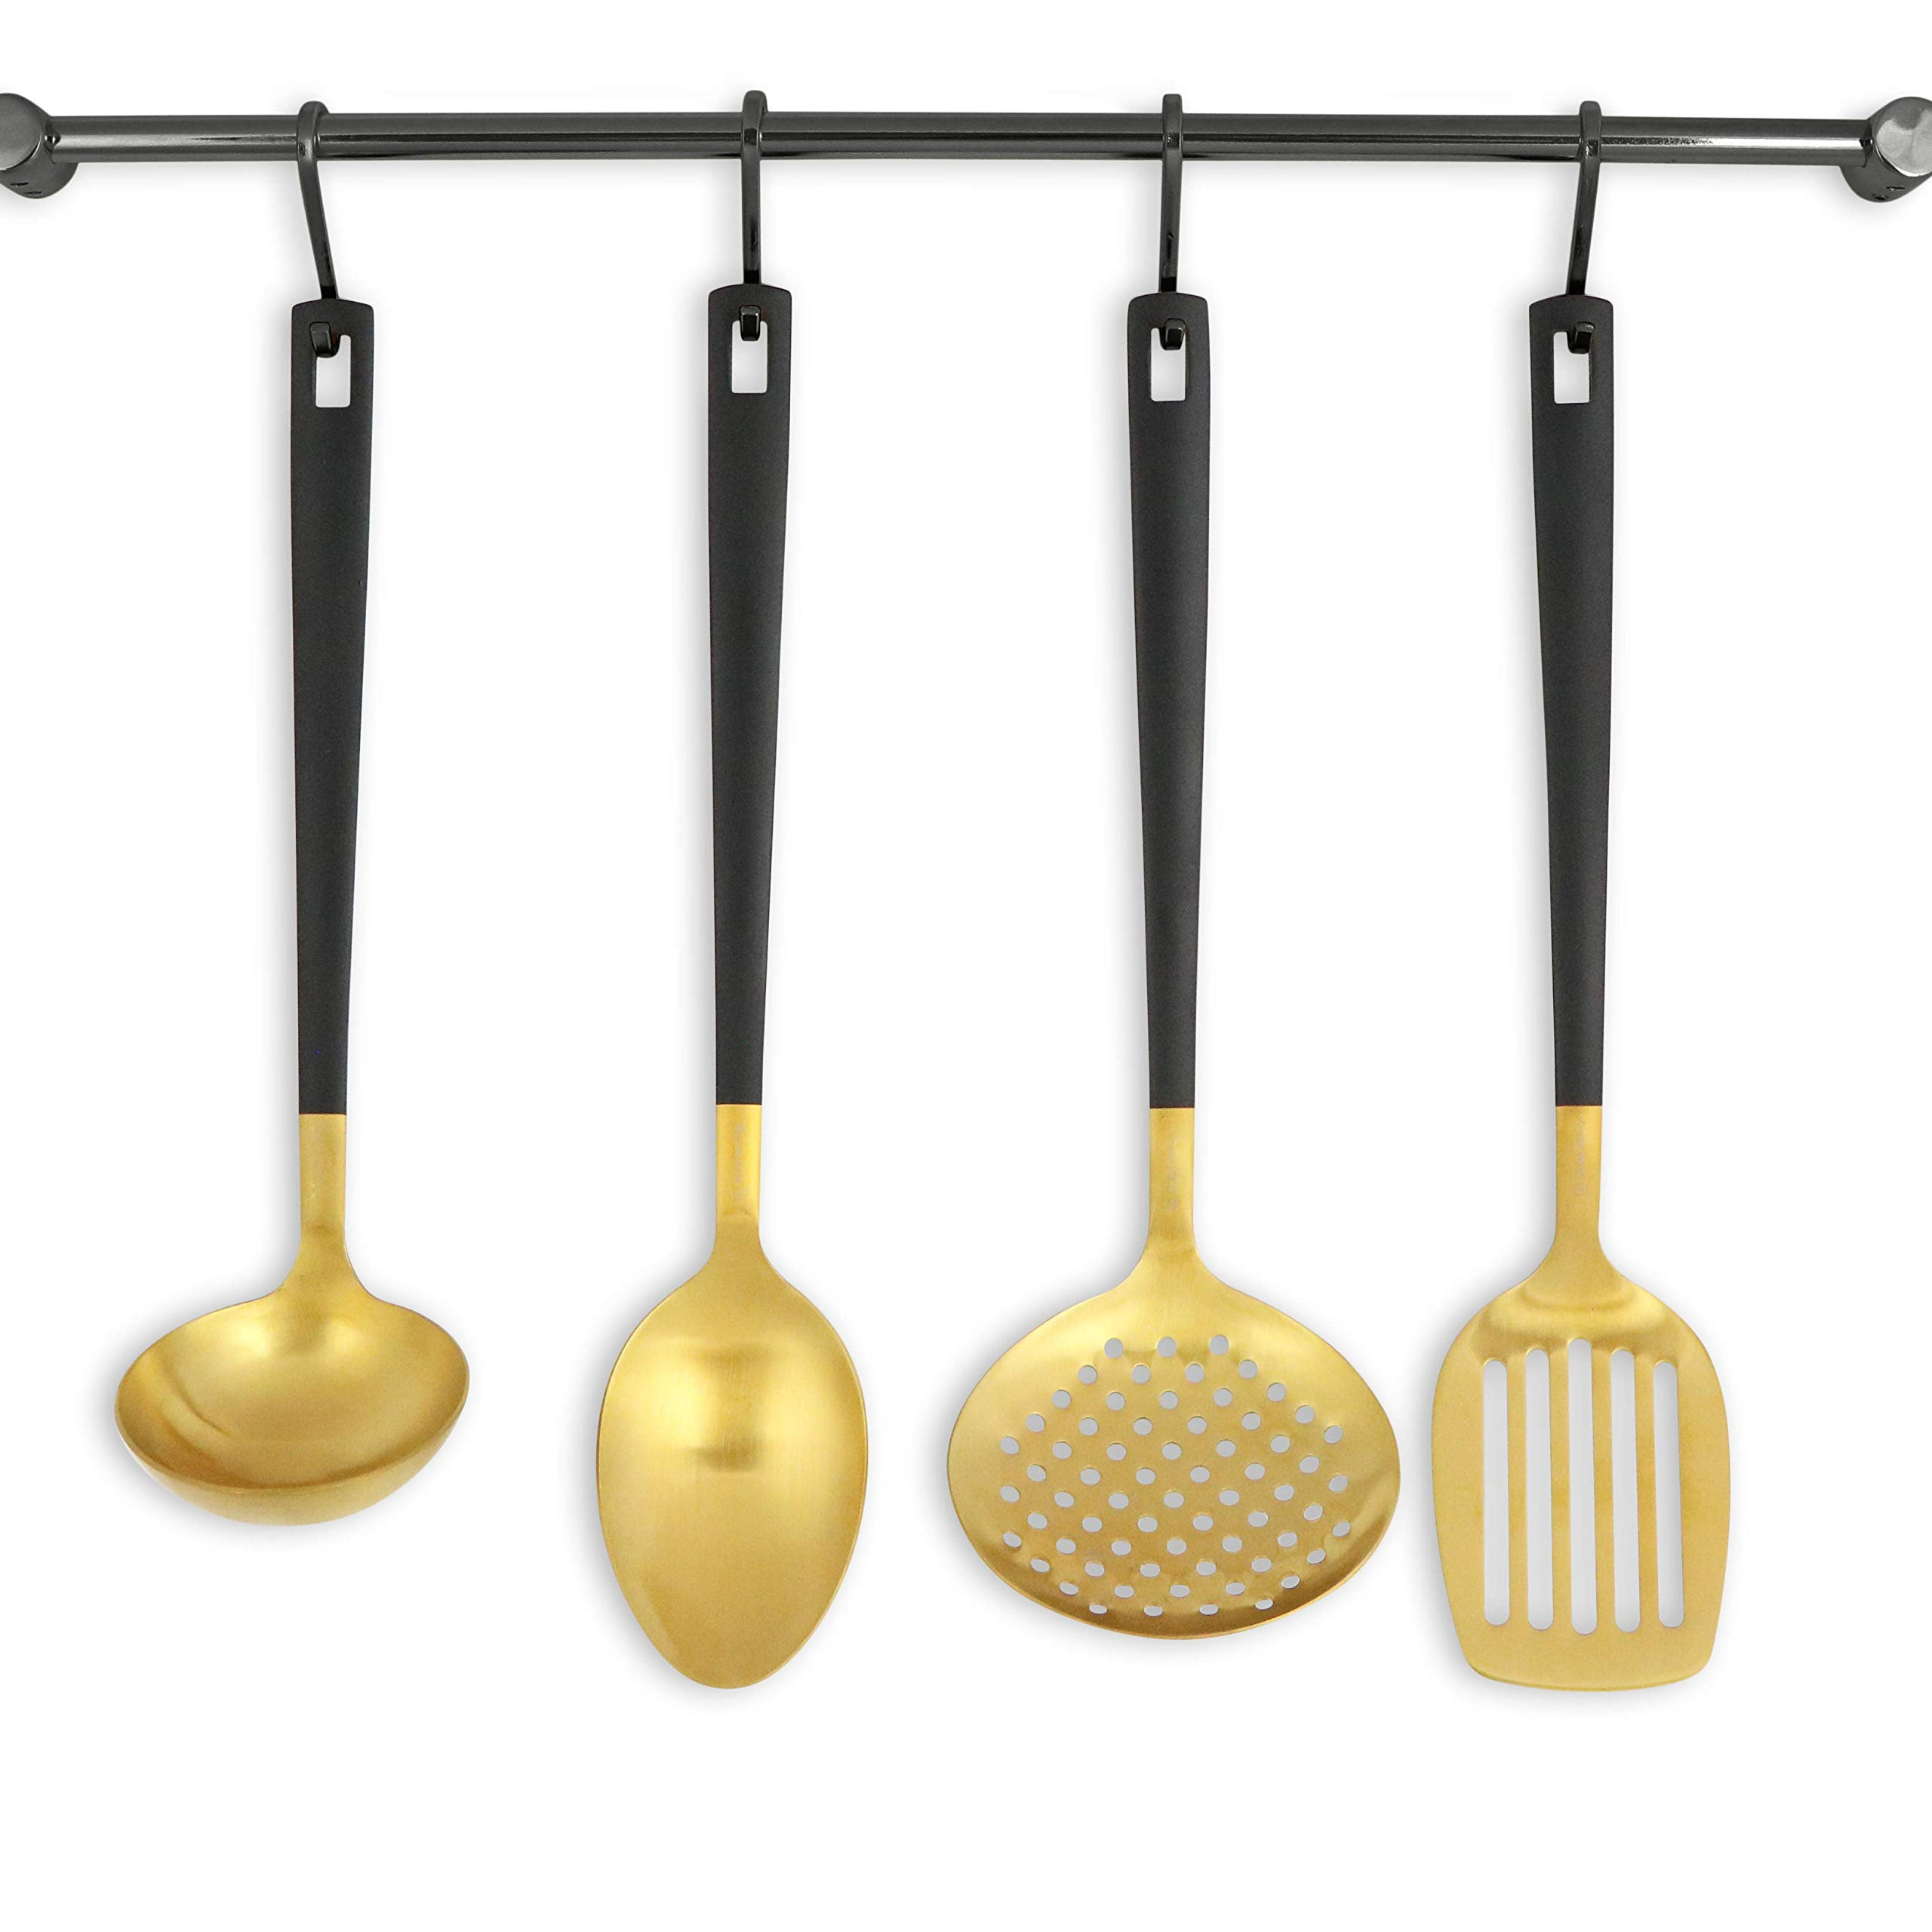 Black and Gold Utensil Set for Cooking and Serving, Stainless Steel Serving Utensils include - Black and Gold Metal Ladle, Skimmer, Serving Spoon, Turner: Gold Serving Sets by STYLED SETTINGS (Image #1)